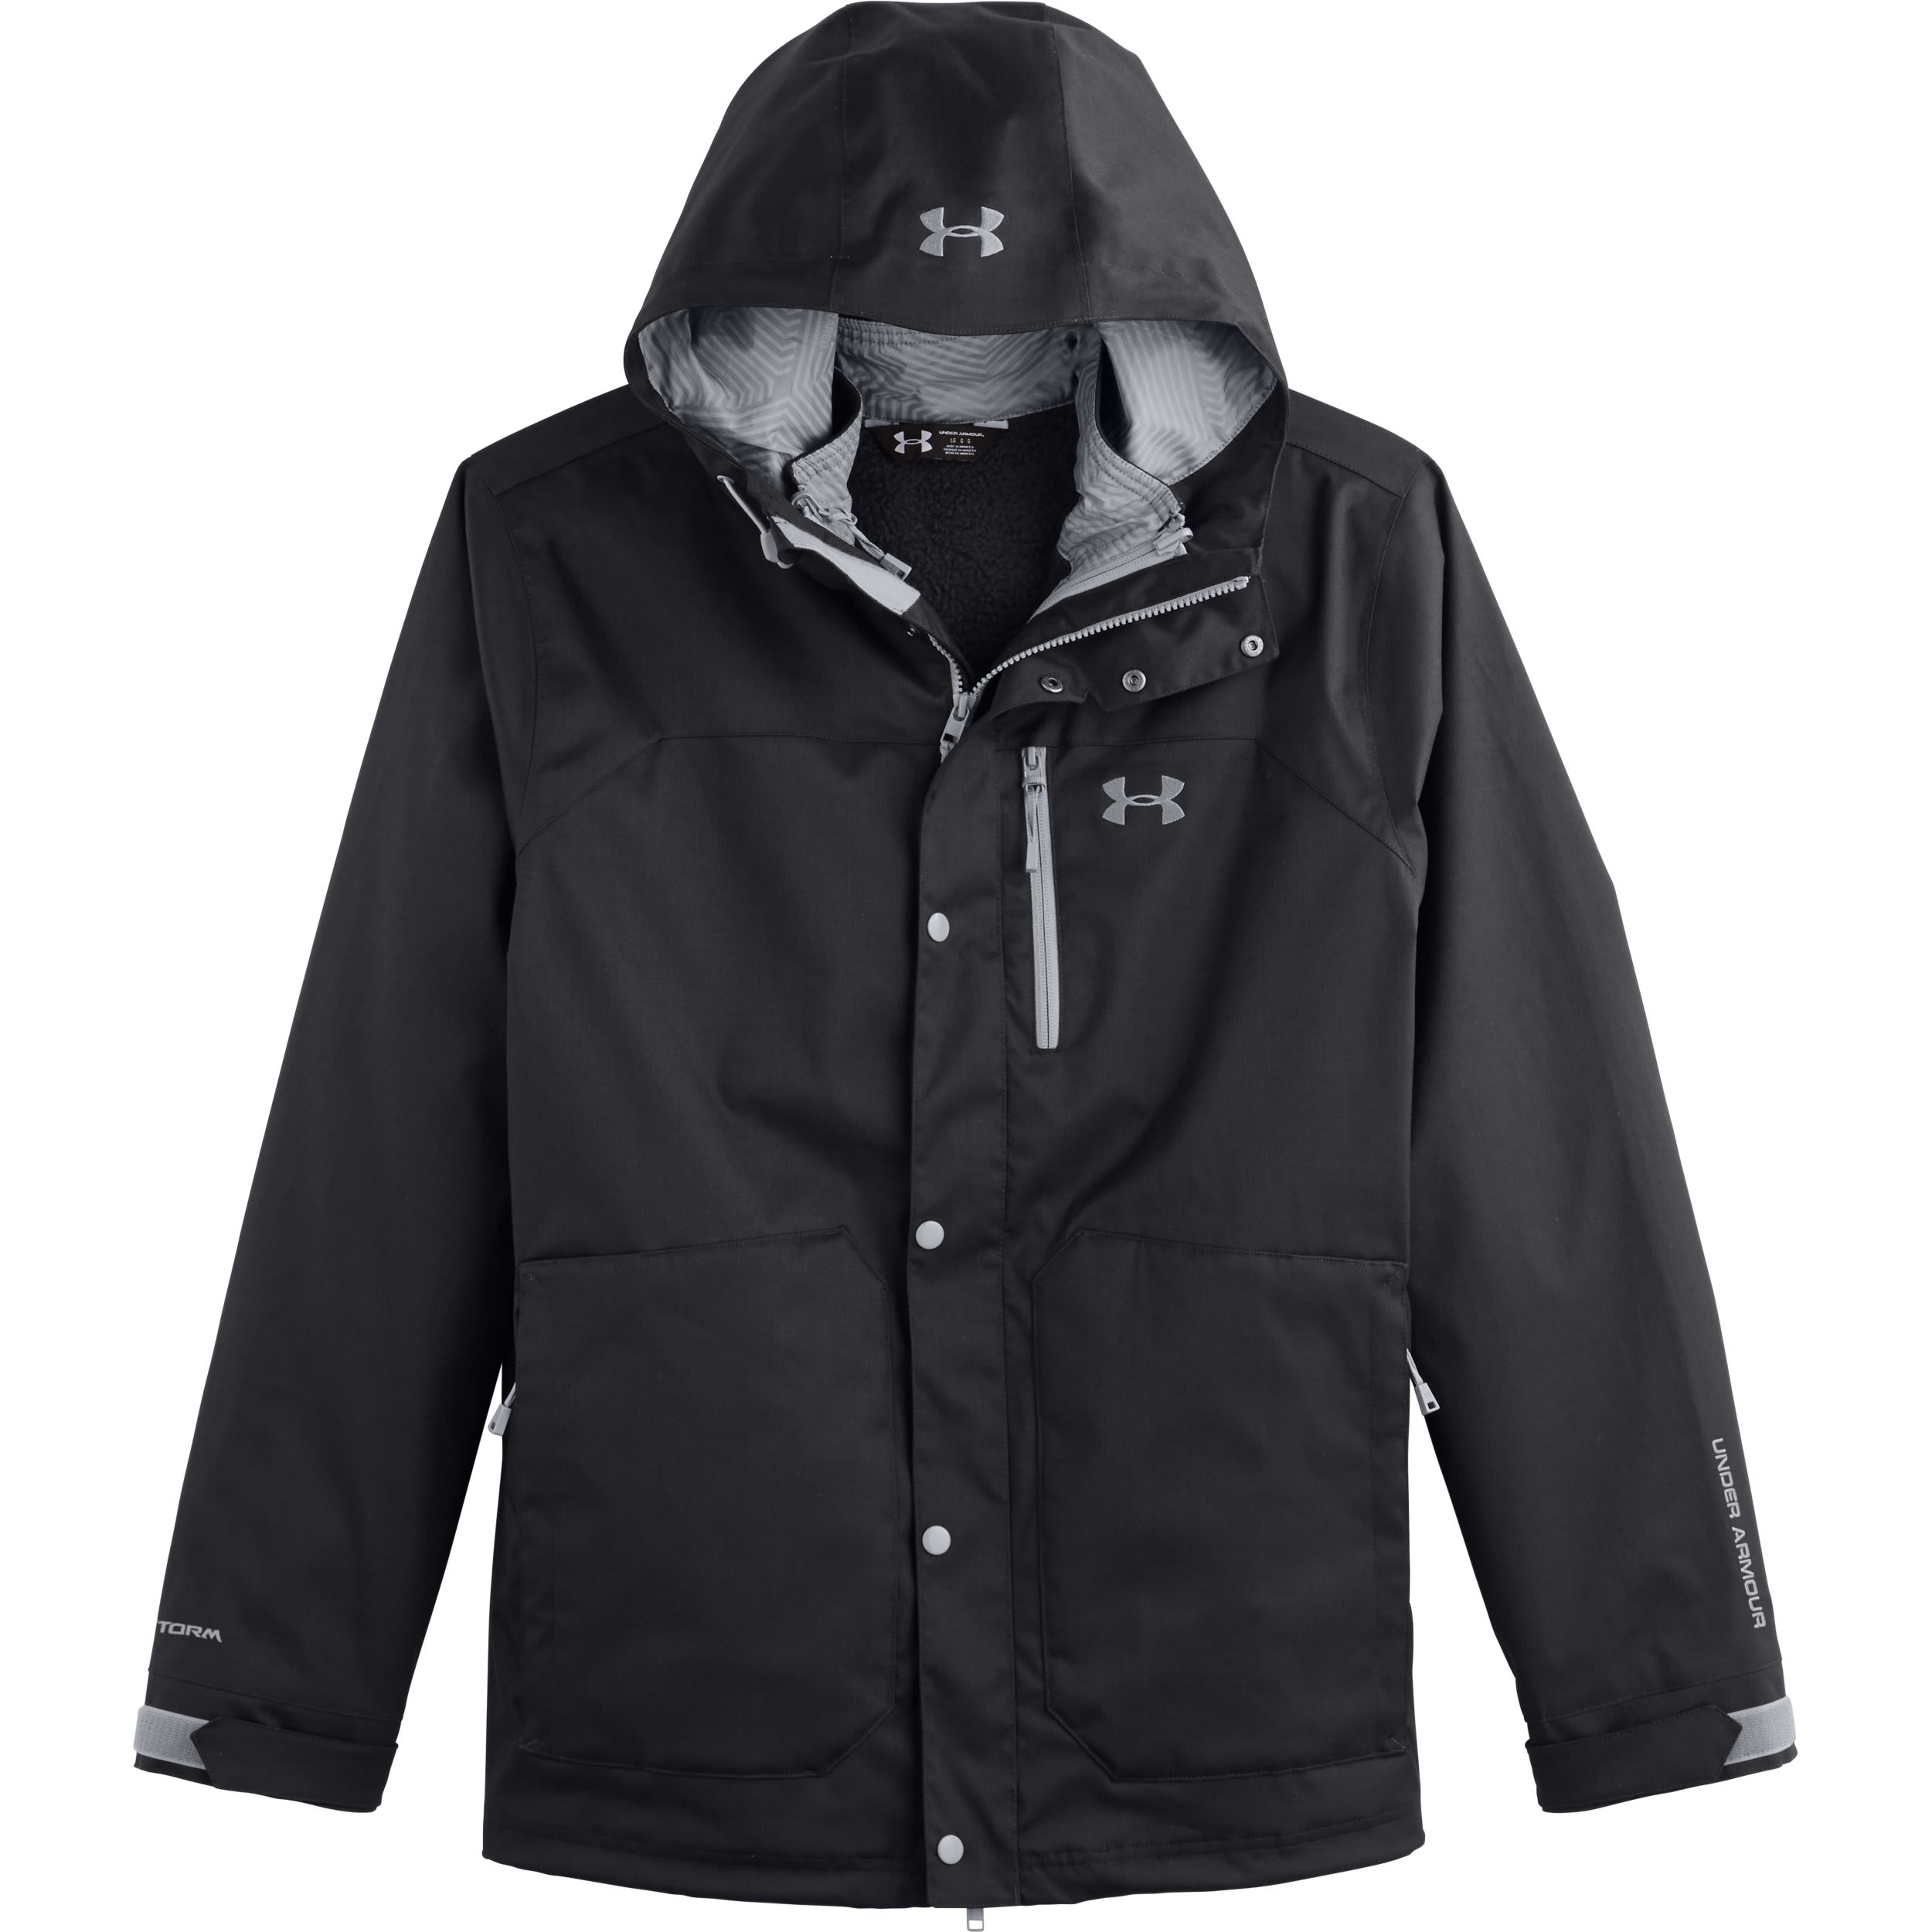 282c48141 Cheap under armor jackets on sale Buy Online >OFF38% Discounted